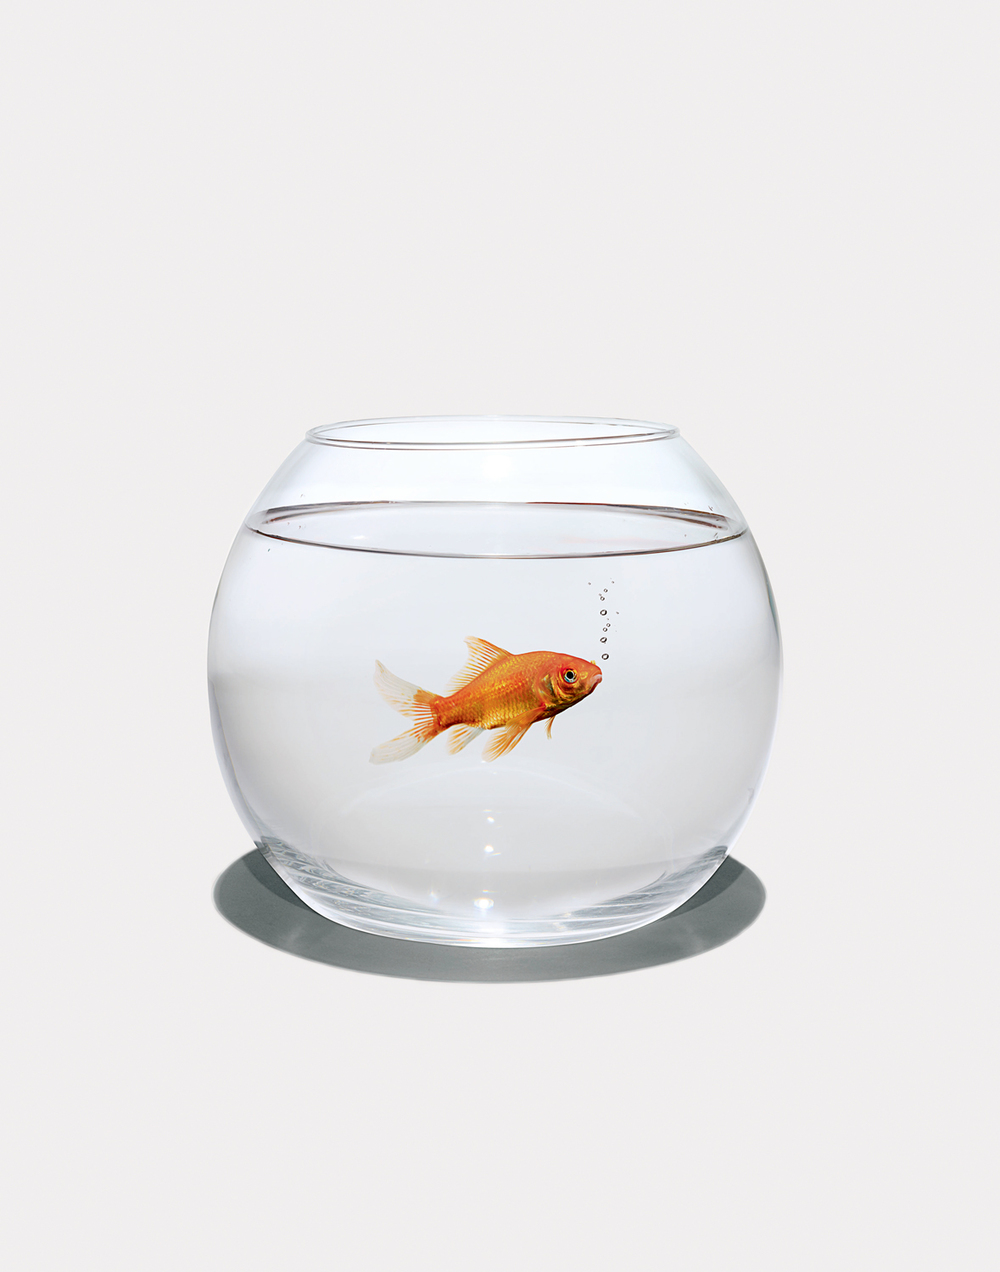 Fish-in-Bowl.jpg